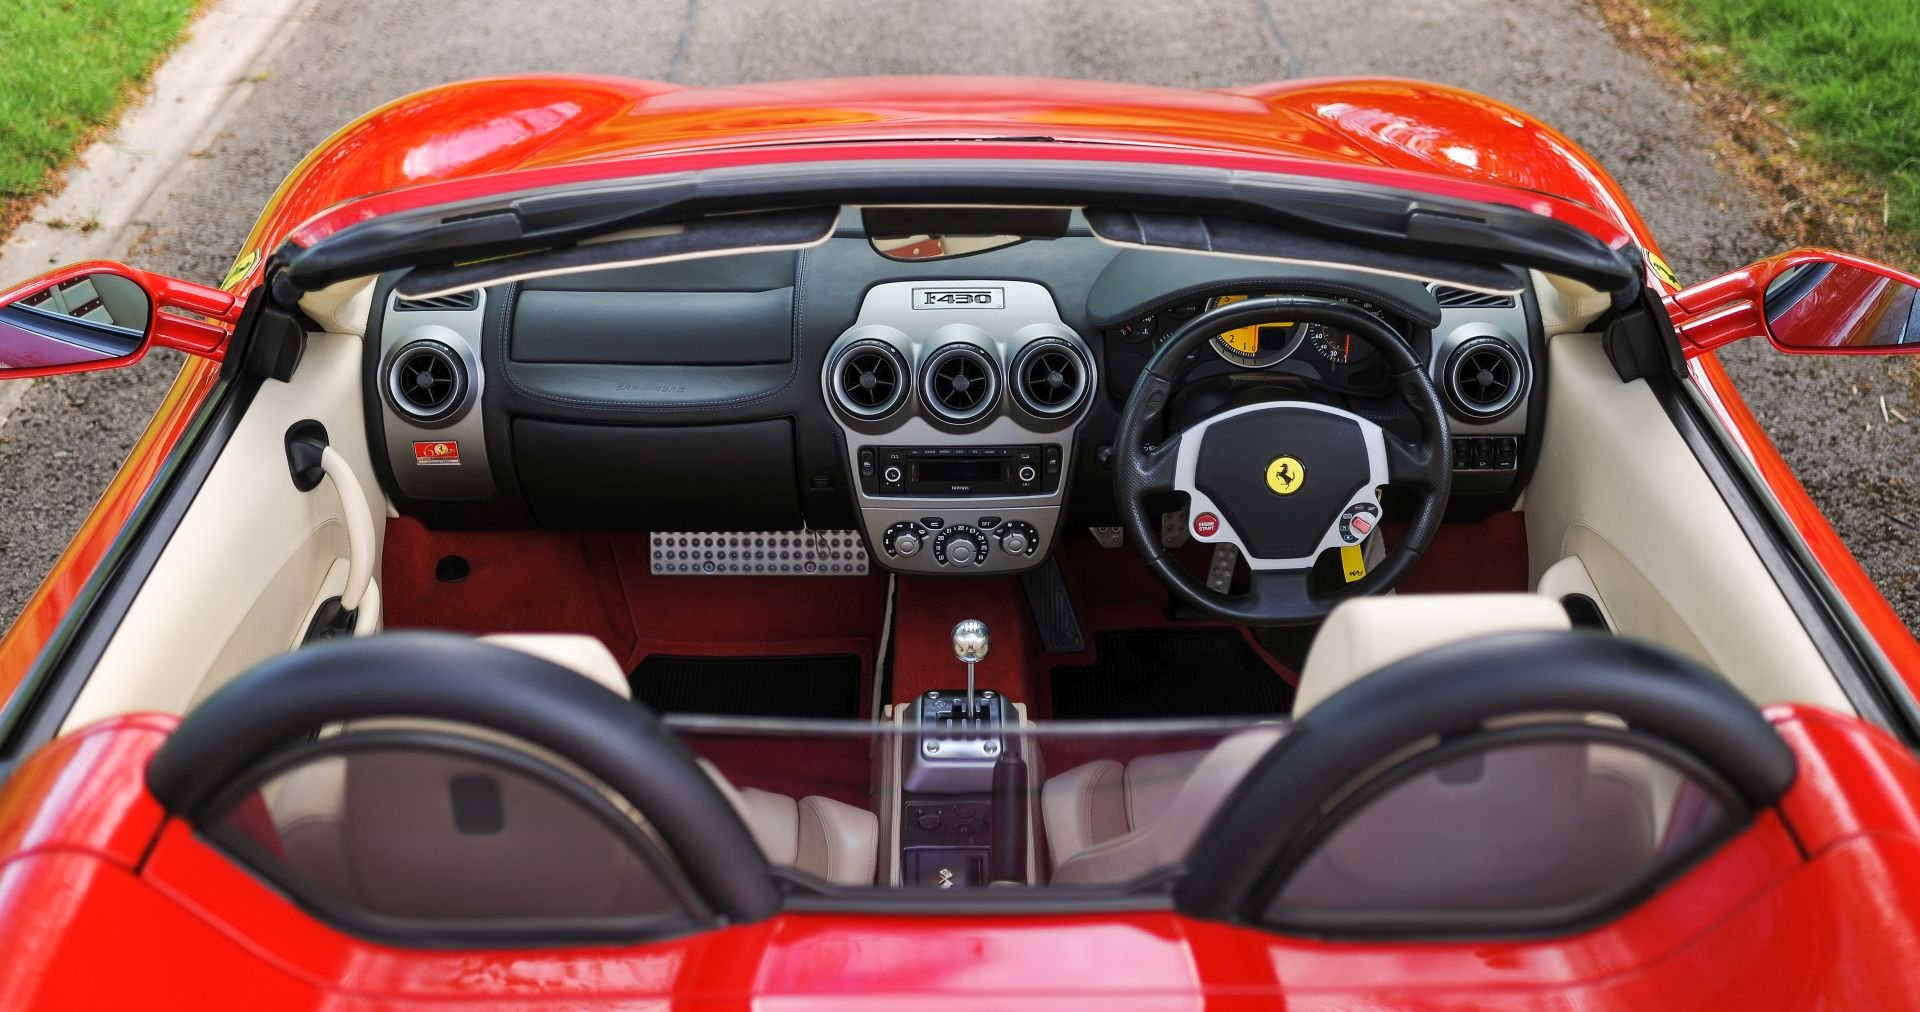 2007 Ferrari F430 Spider Manual with Only 17,412 Miles For Sale (picture 3 of 6)